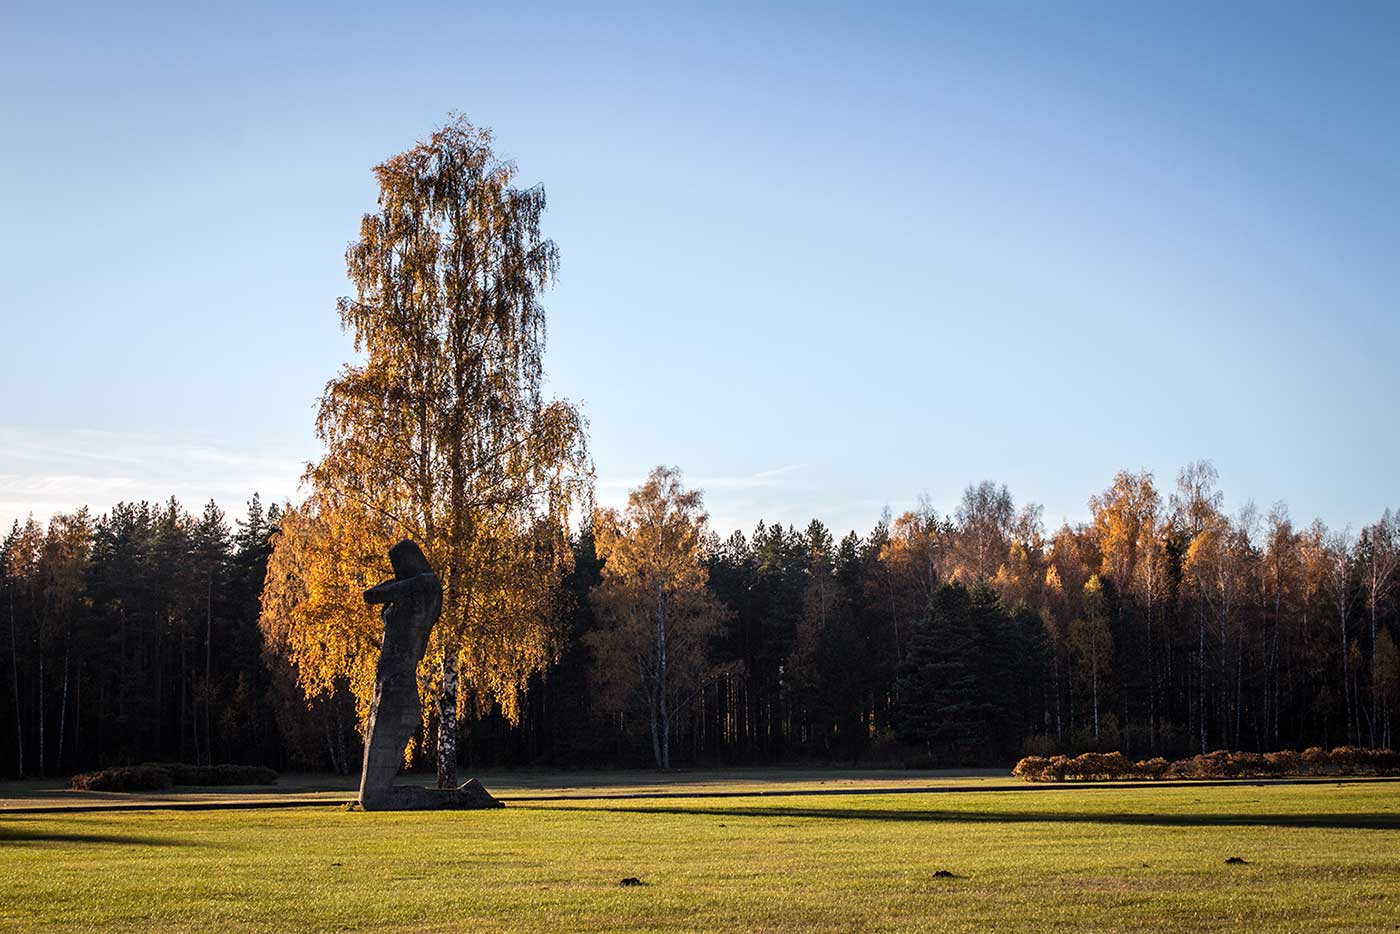 'The Humiliated' is partially hidden now, behind a tree not part of the original design for the memorial. Salaspils Memorial, Latvia.